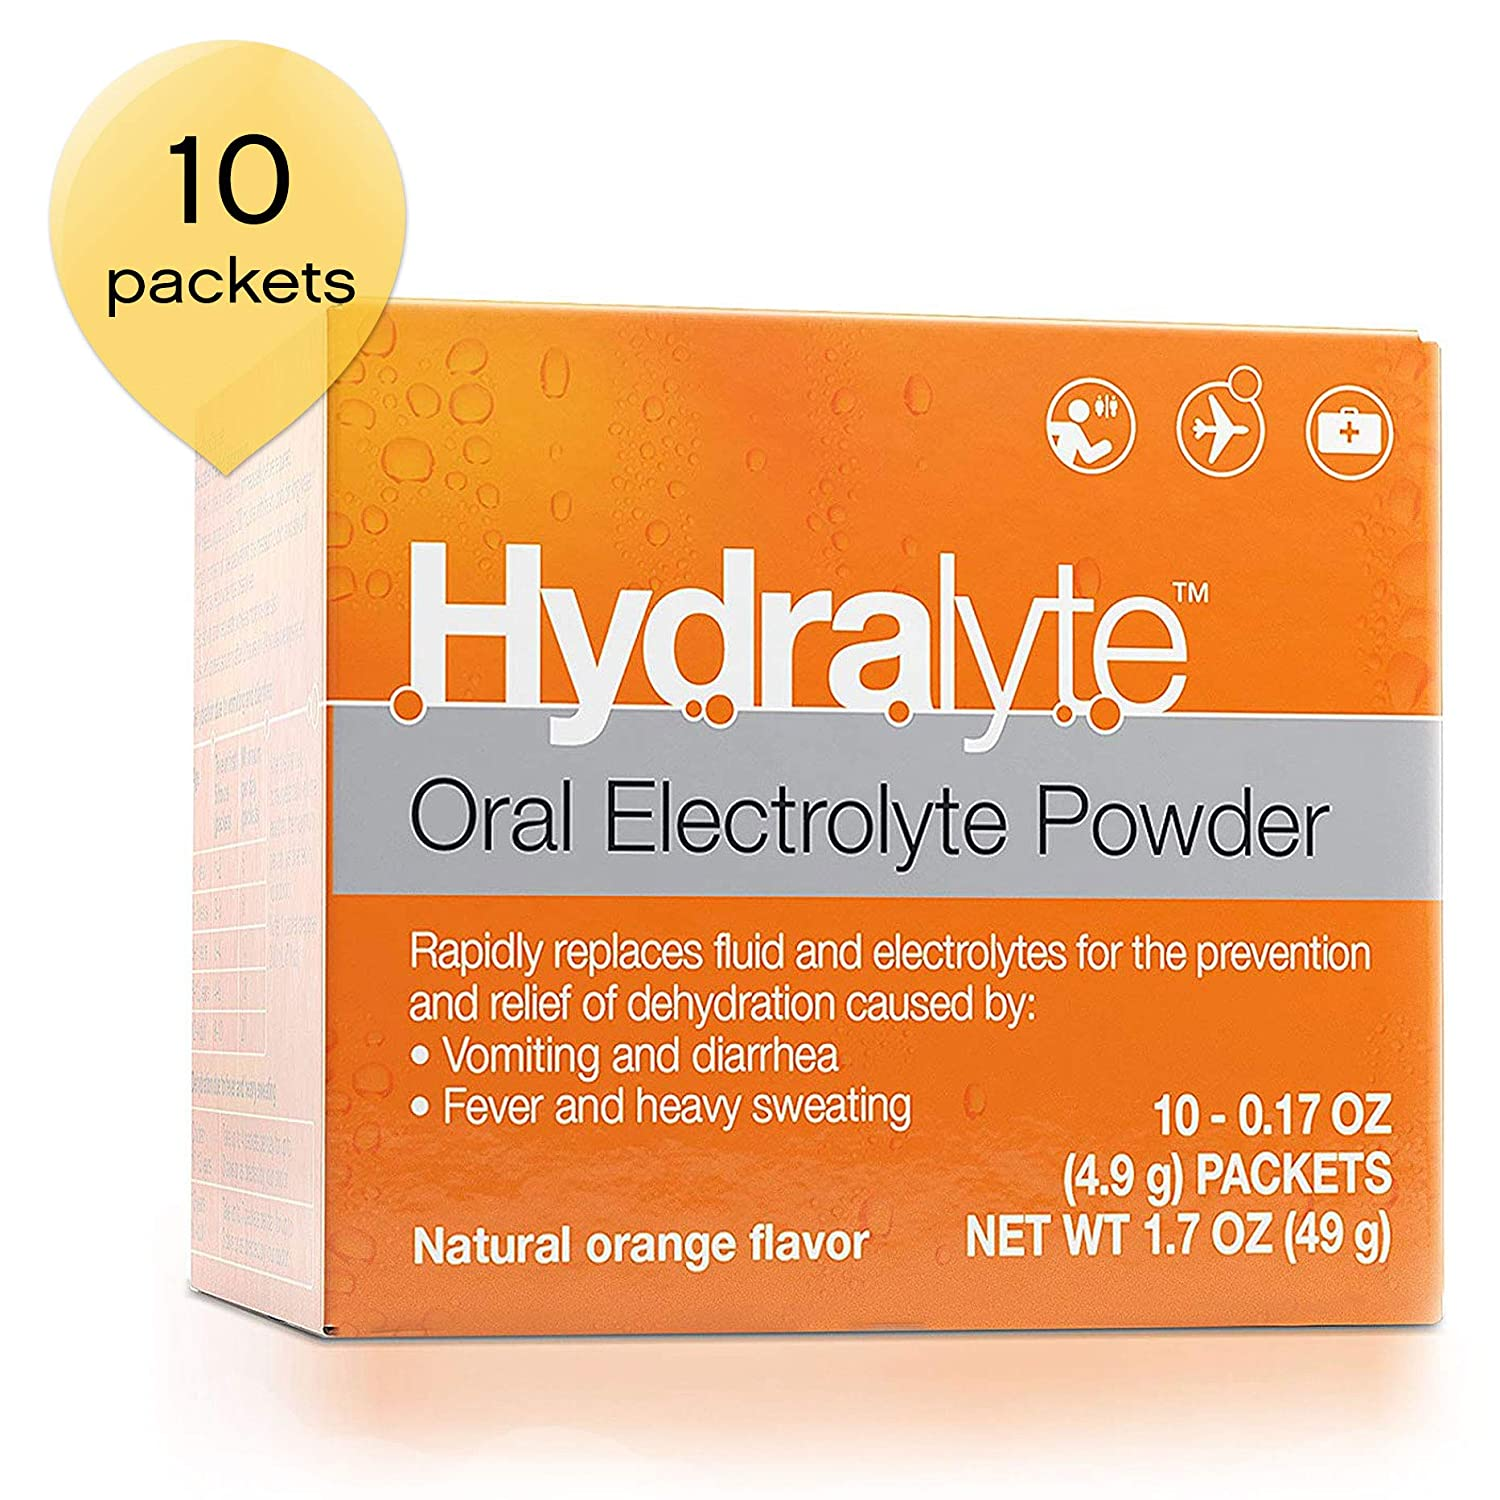 Amazon.com: Hydralyte - Electrolyte Powder Packets, Formula for On-The-Go  Clinical Hydration, Orange, 10 Count - Supports Recovery of Lost  Electrolytes Due ...